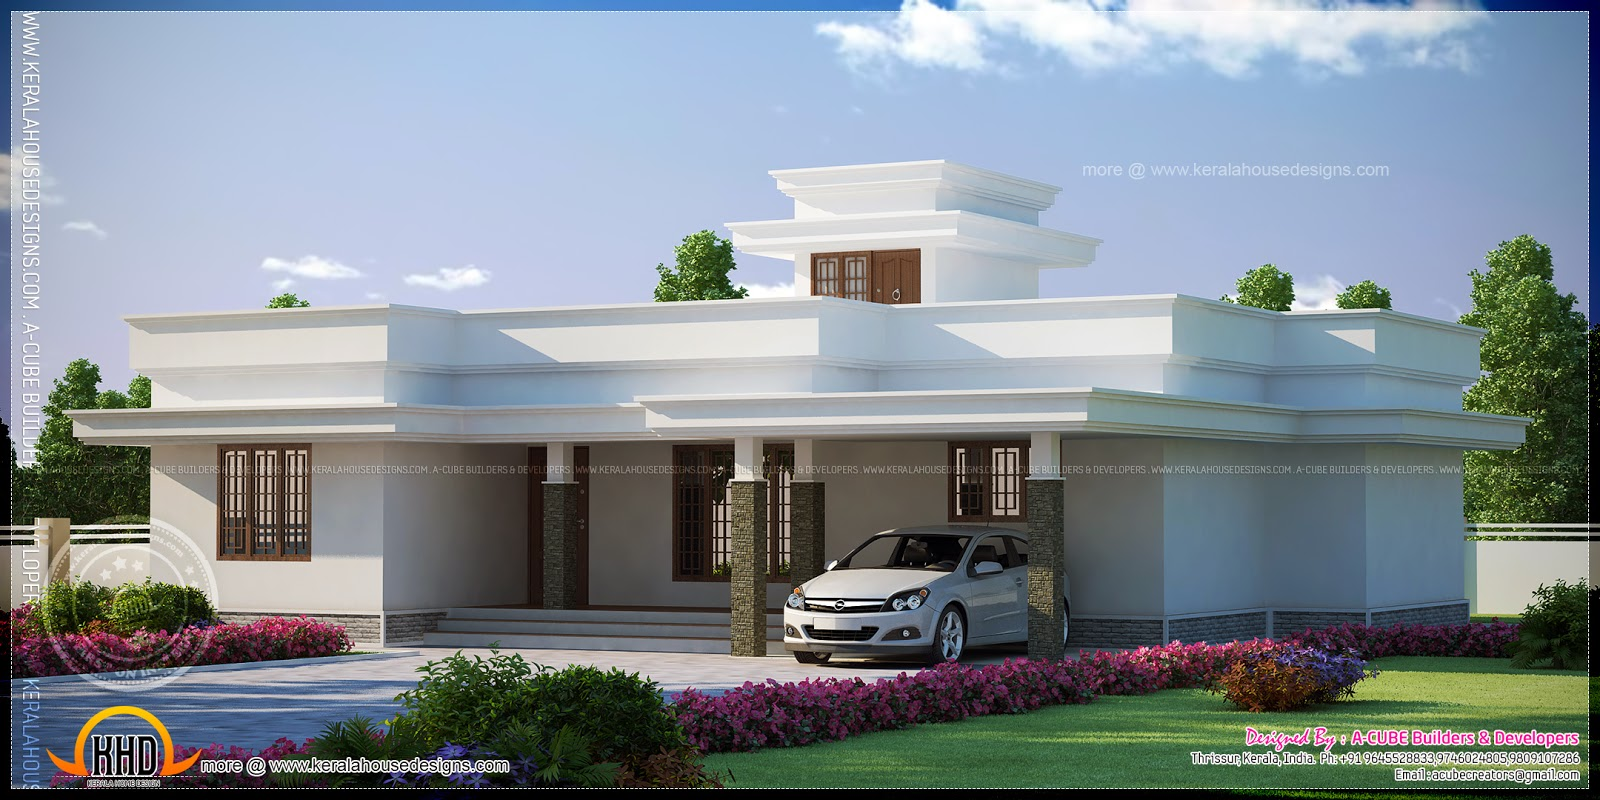 Contemporary flat roof single storied house model kerala for Contemporary model house